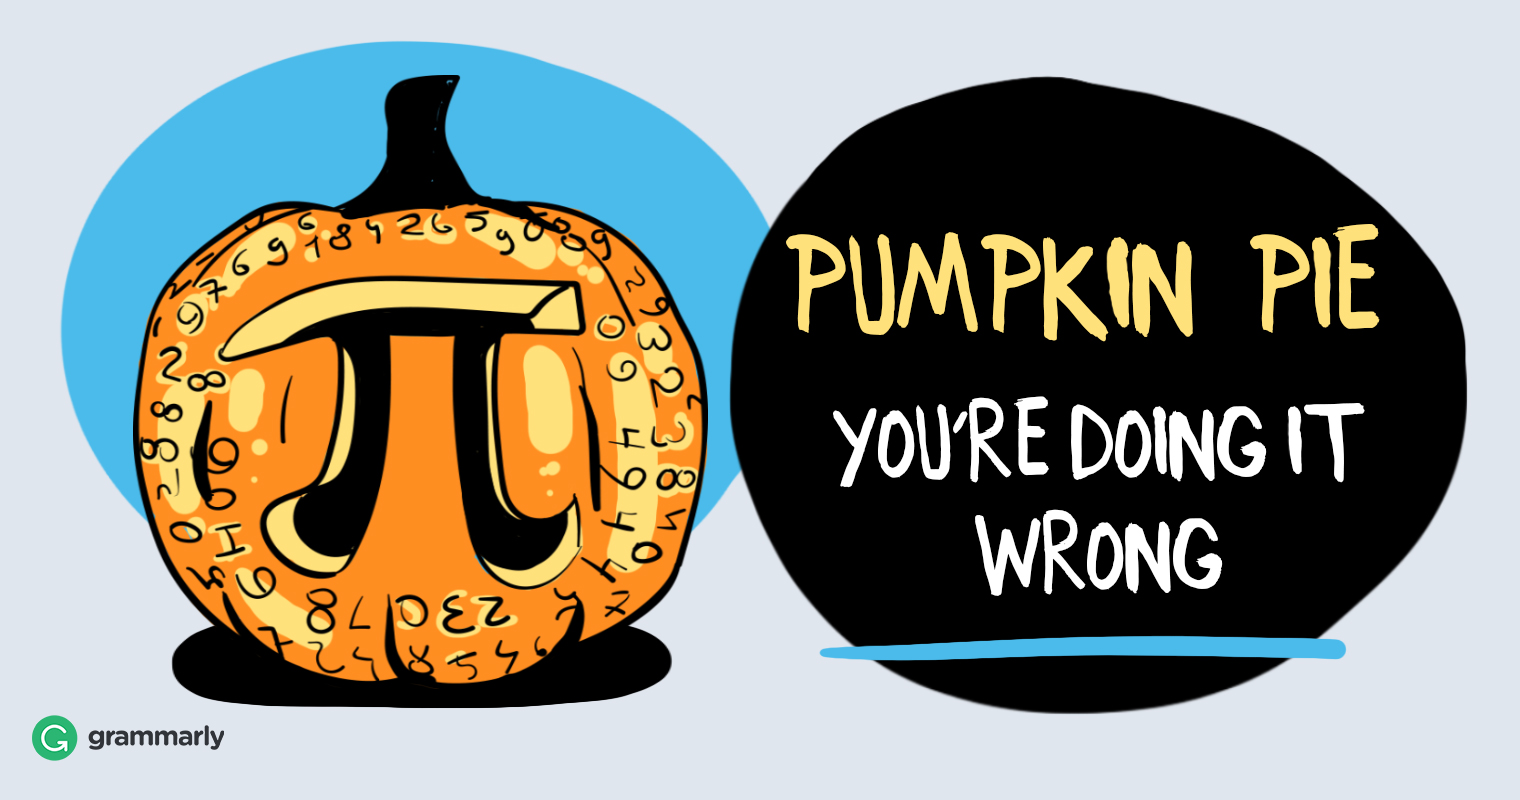 29 halloween memes and gifs to share via email | grammarly